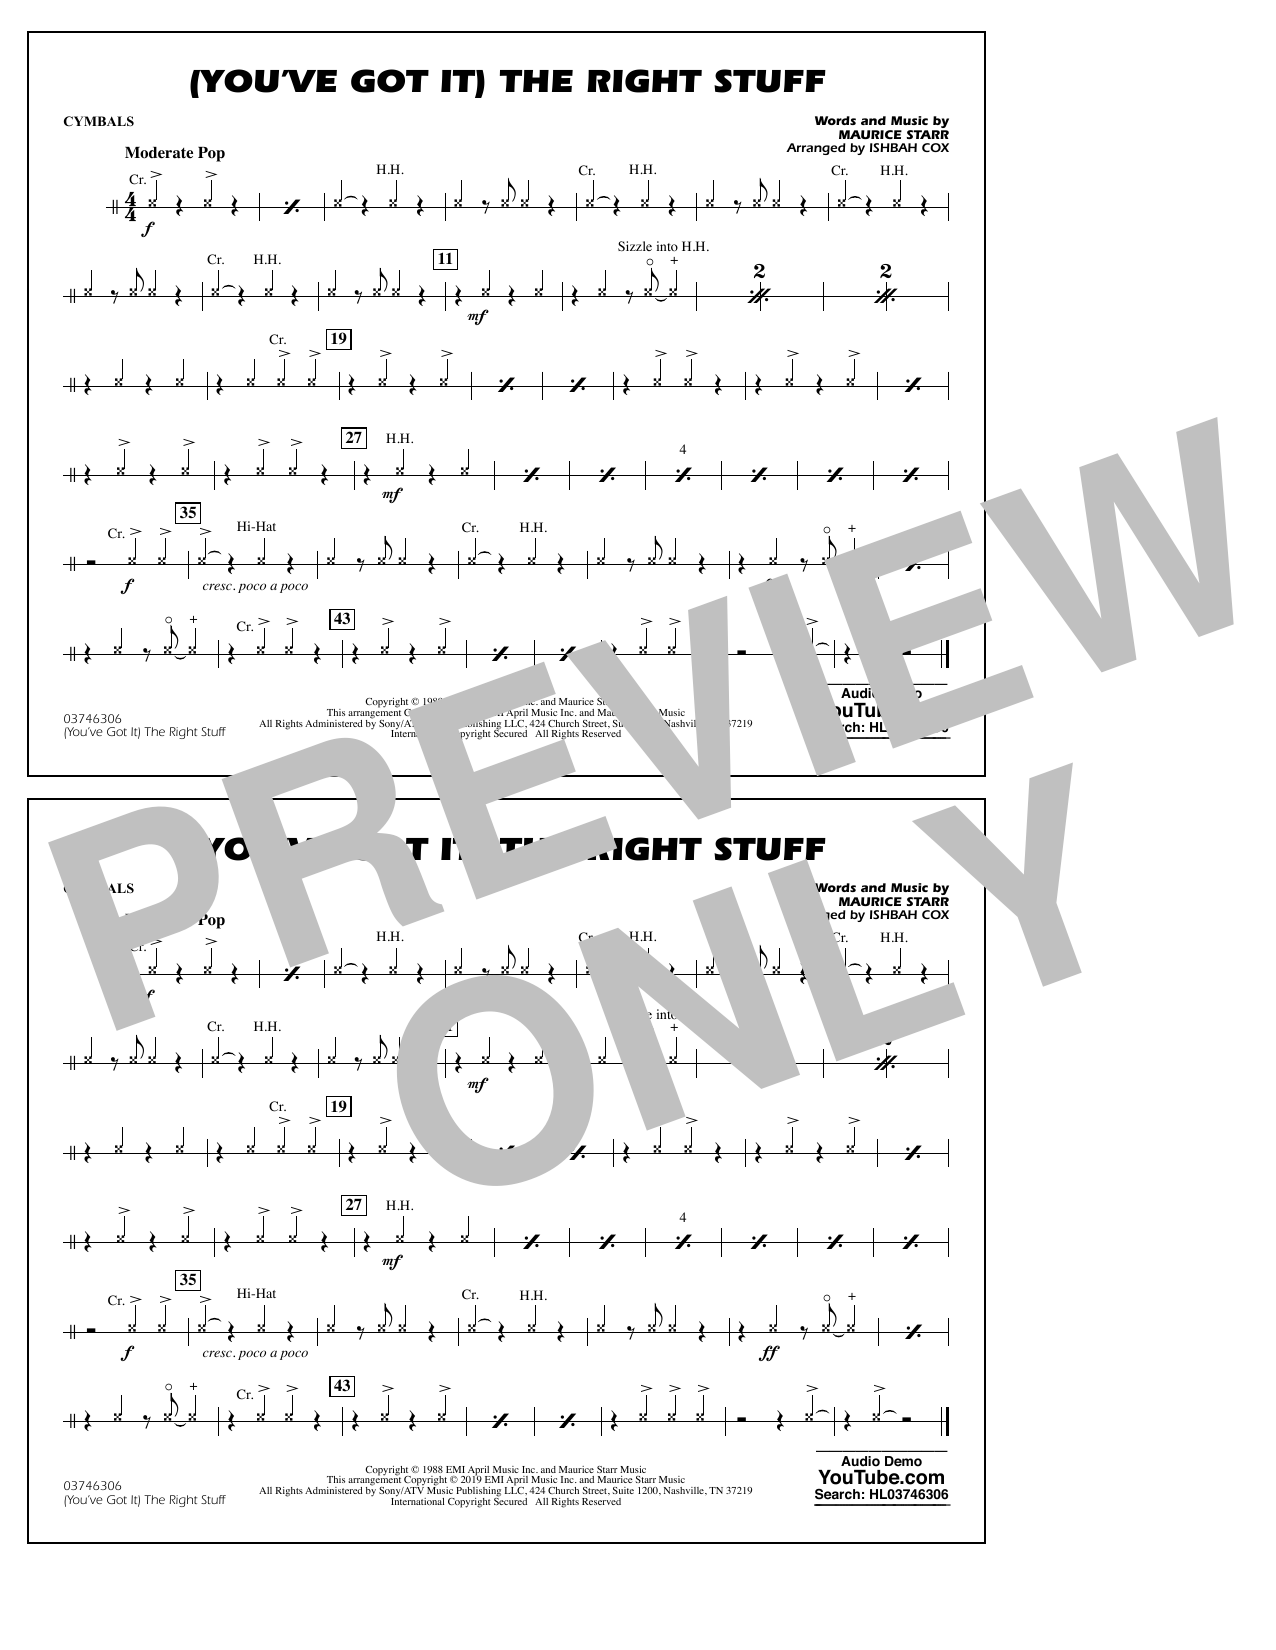 New Kids On The Block (You've Got It) The Right Stuff (arr. Ishbah Cox) - Cymbals sheet music notes and chords